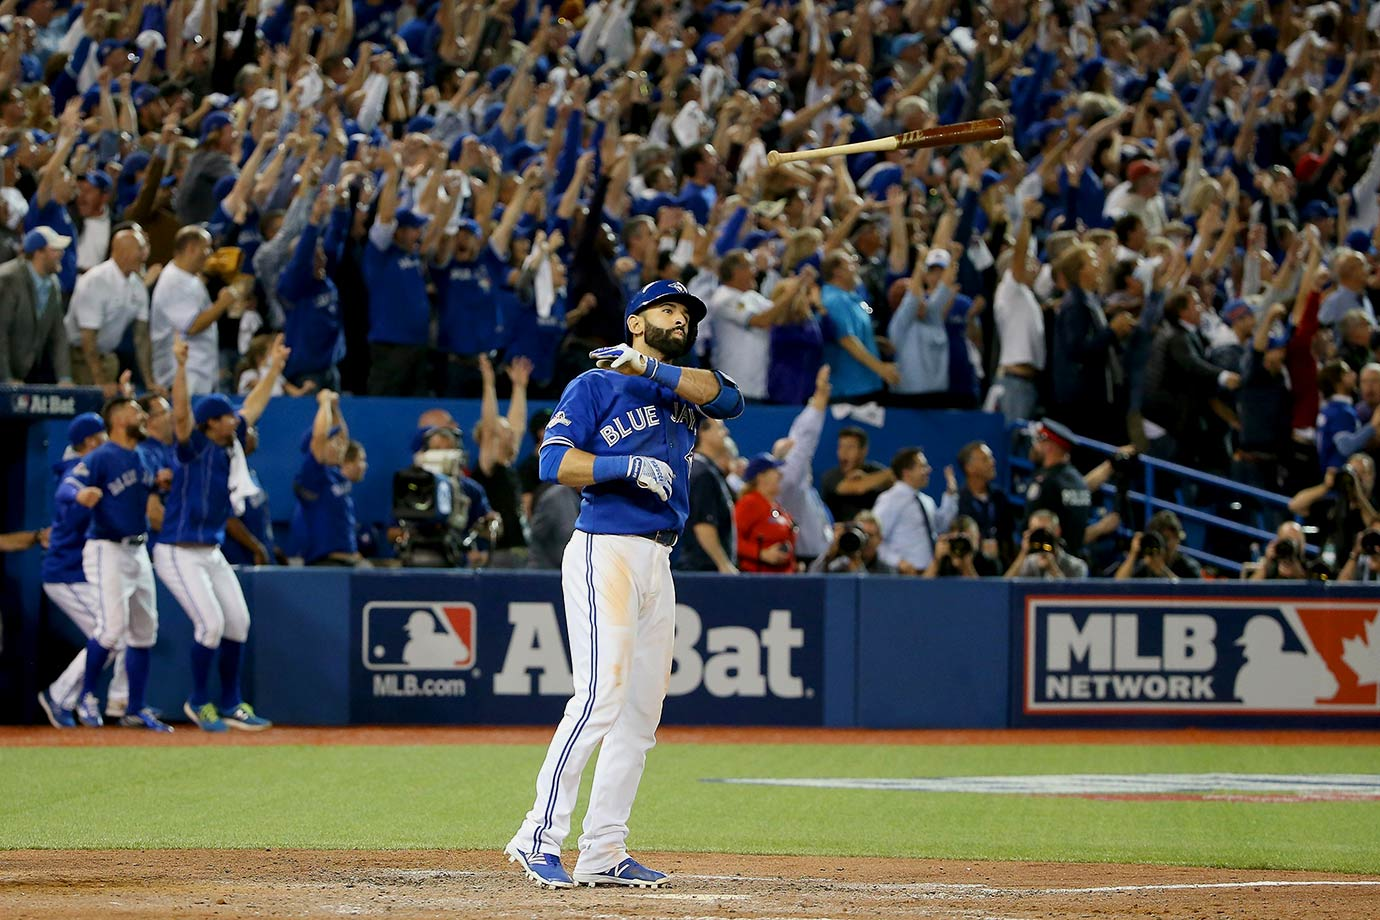 In Game 5 of the American League Division Series against the Texas Rangers, Jays catcher Russell Martin accidentally hit Shin-Soo Choo's bat while throwing the ball back to the pitcher – allowing a runner to score from third. While playing the game under protest, Bautista made it a moot point, after he crushed a three-run-home run to put Toronto ahead for good, sending them to its first championship series since 1993. But Bautista's bat flip became one for the ages, emphatically tossing his bat 10 yards away toward his dugout.